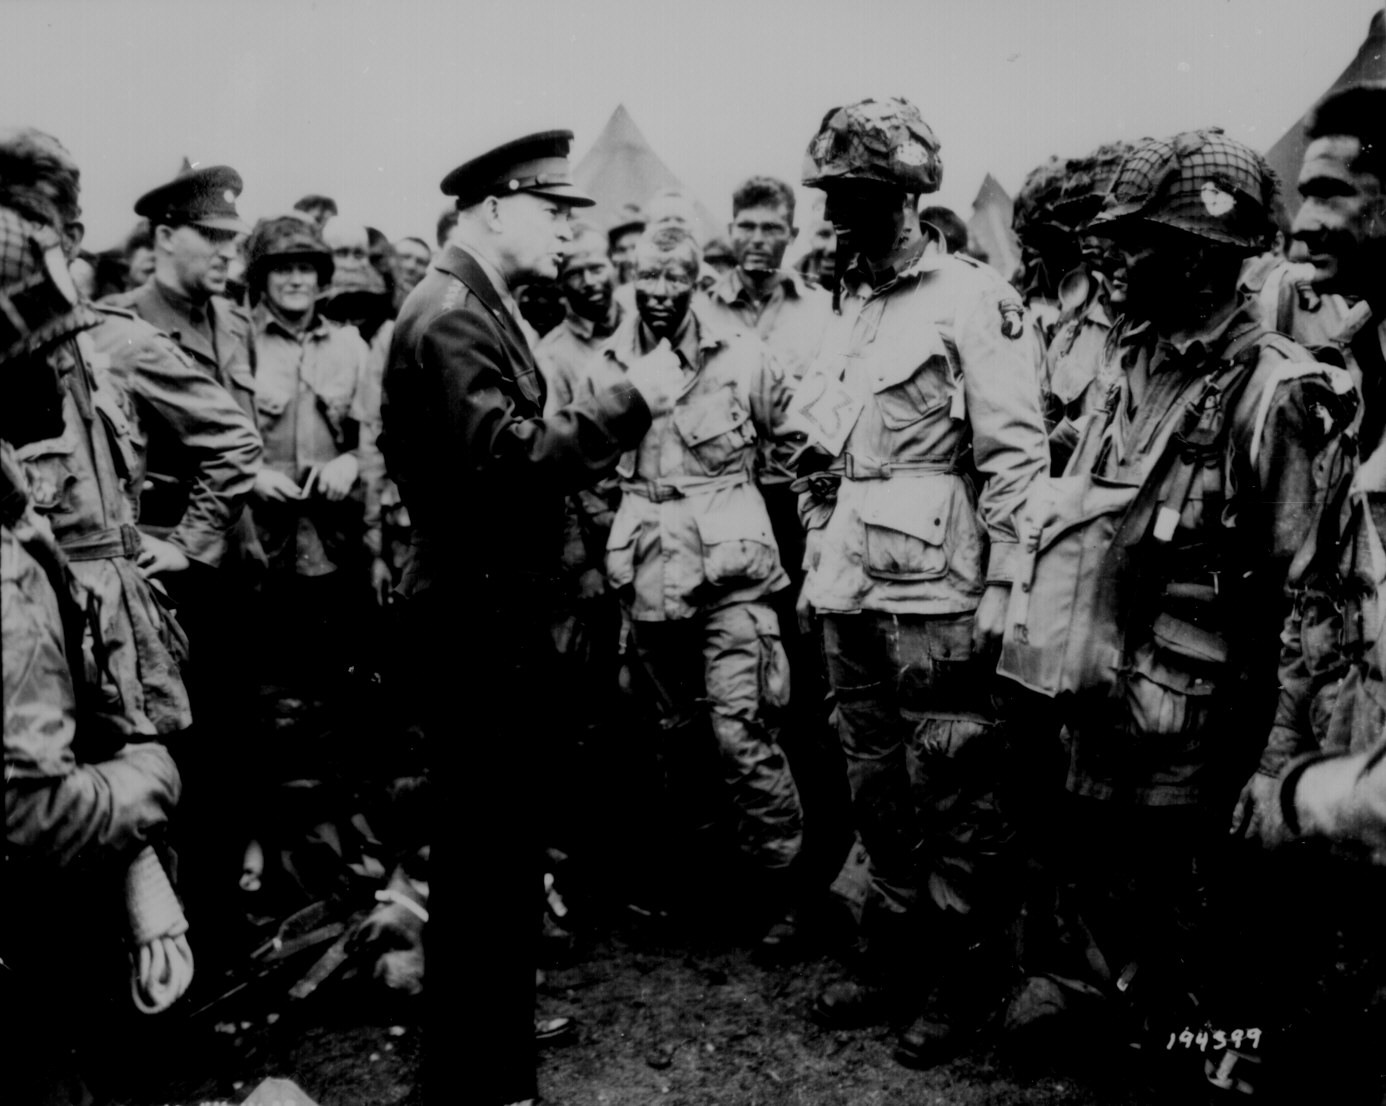 Gen. Dwight D. Eisenhower gives the order of the Day